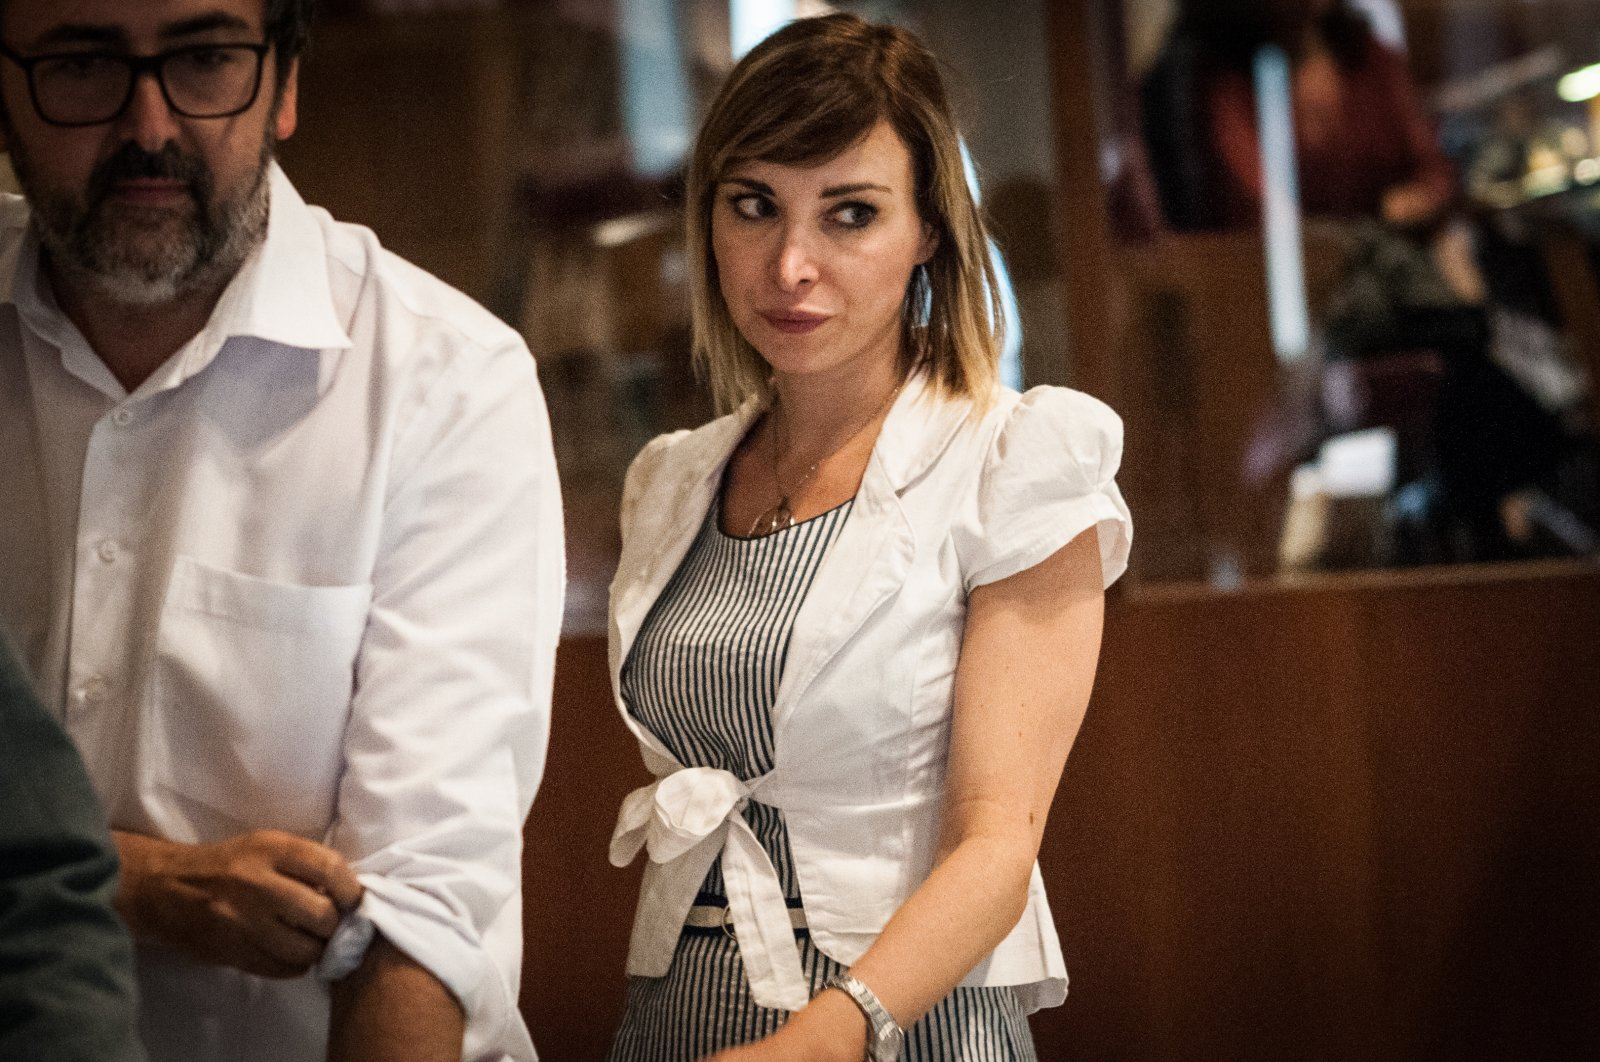 Rachele Mussolini during a session of the Capitoline Assembly in Rome, Italy, June 14, 2018. (Getty Images)